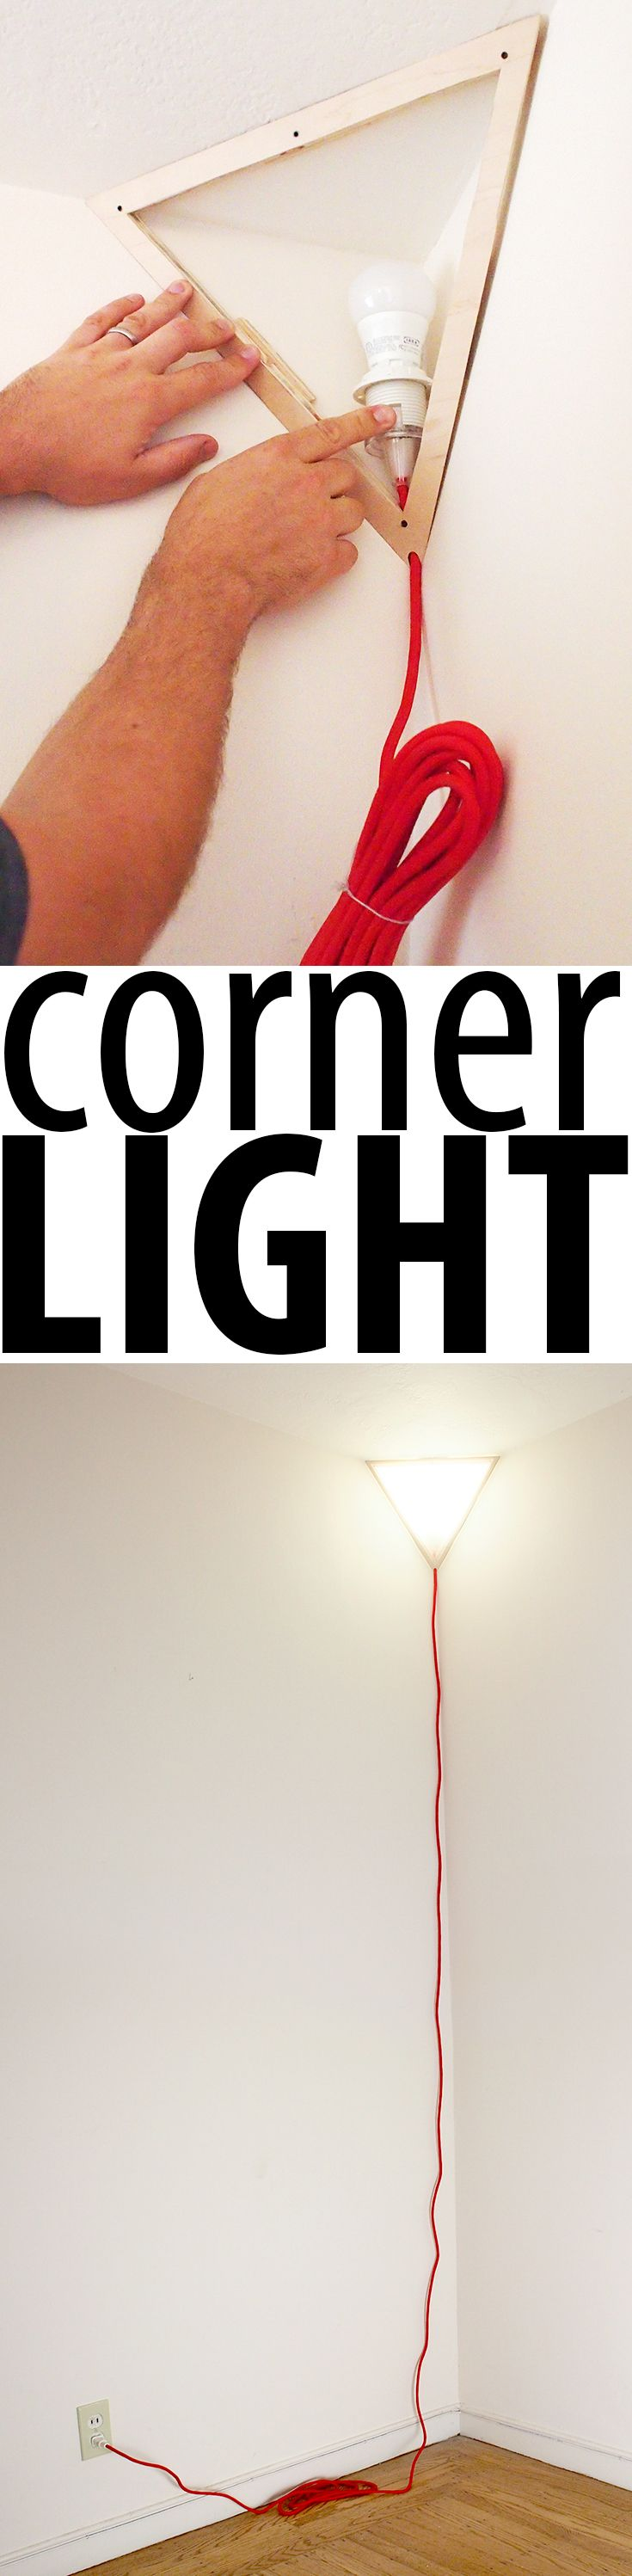 DIY Projects: Corner Lamp